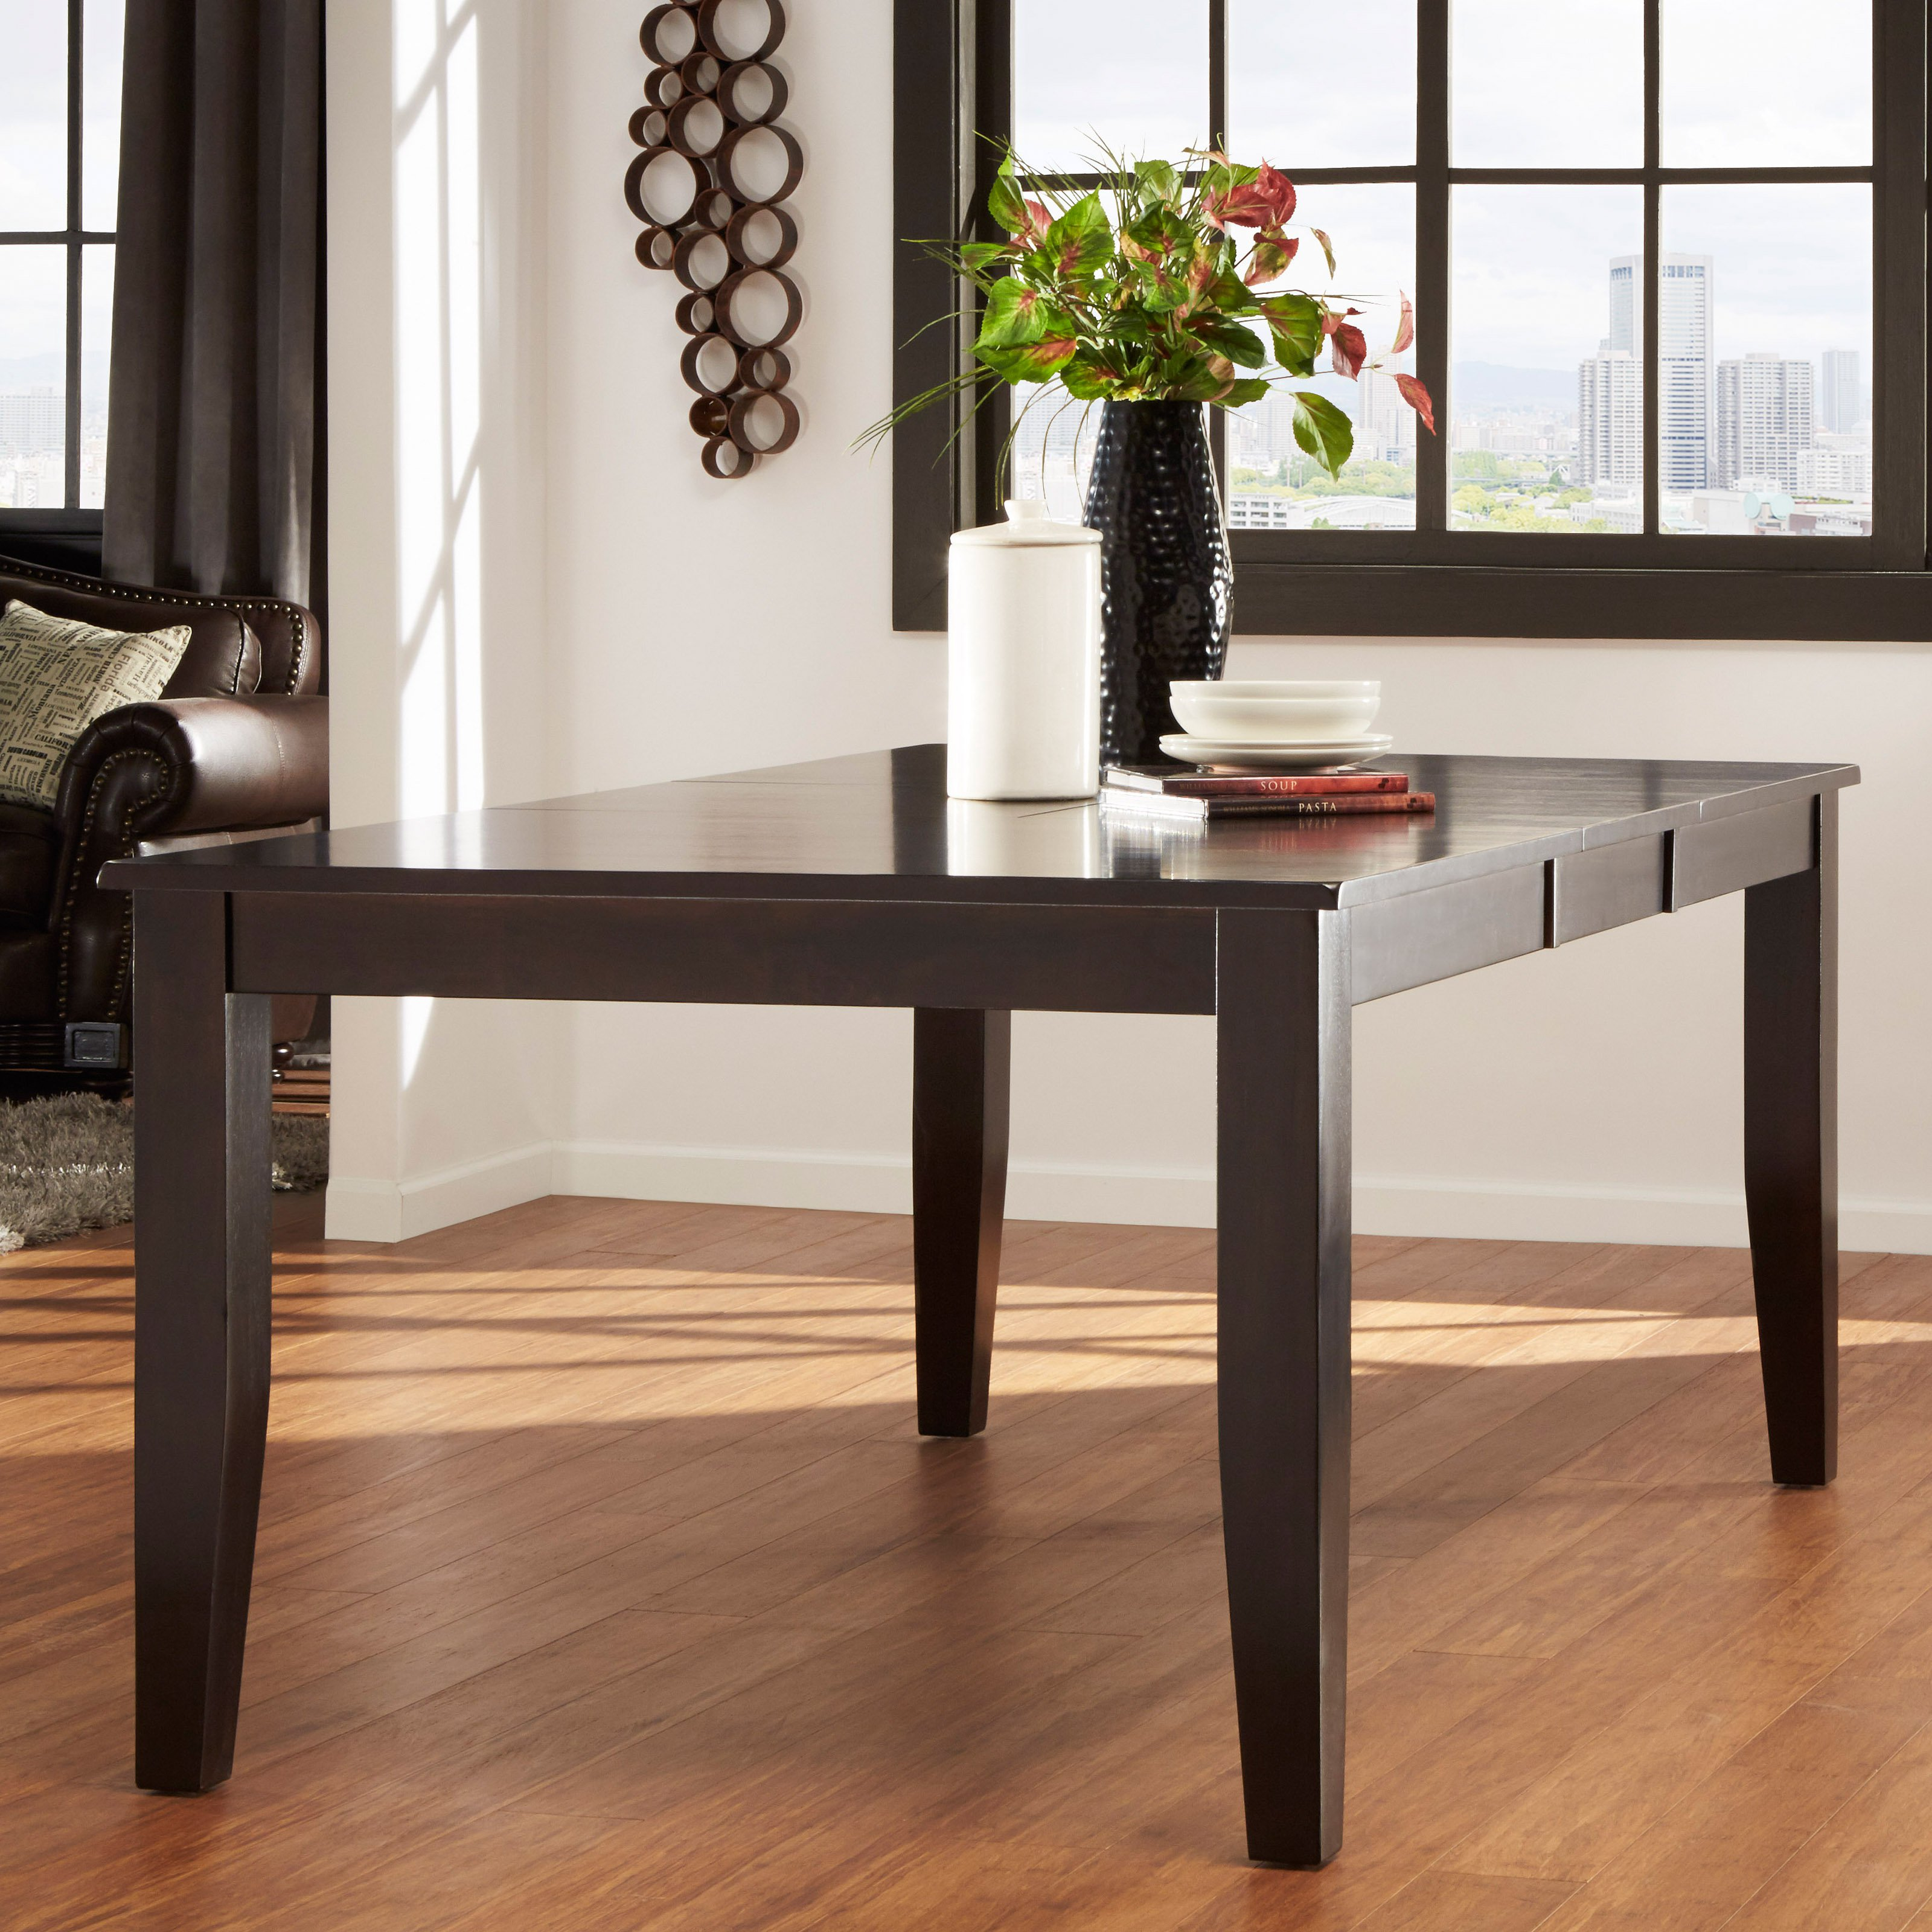 Homelegance Crown Point Dining Table - Merlot